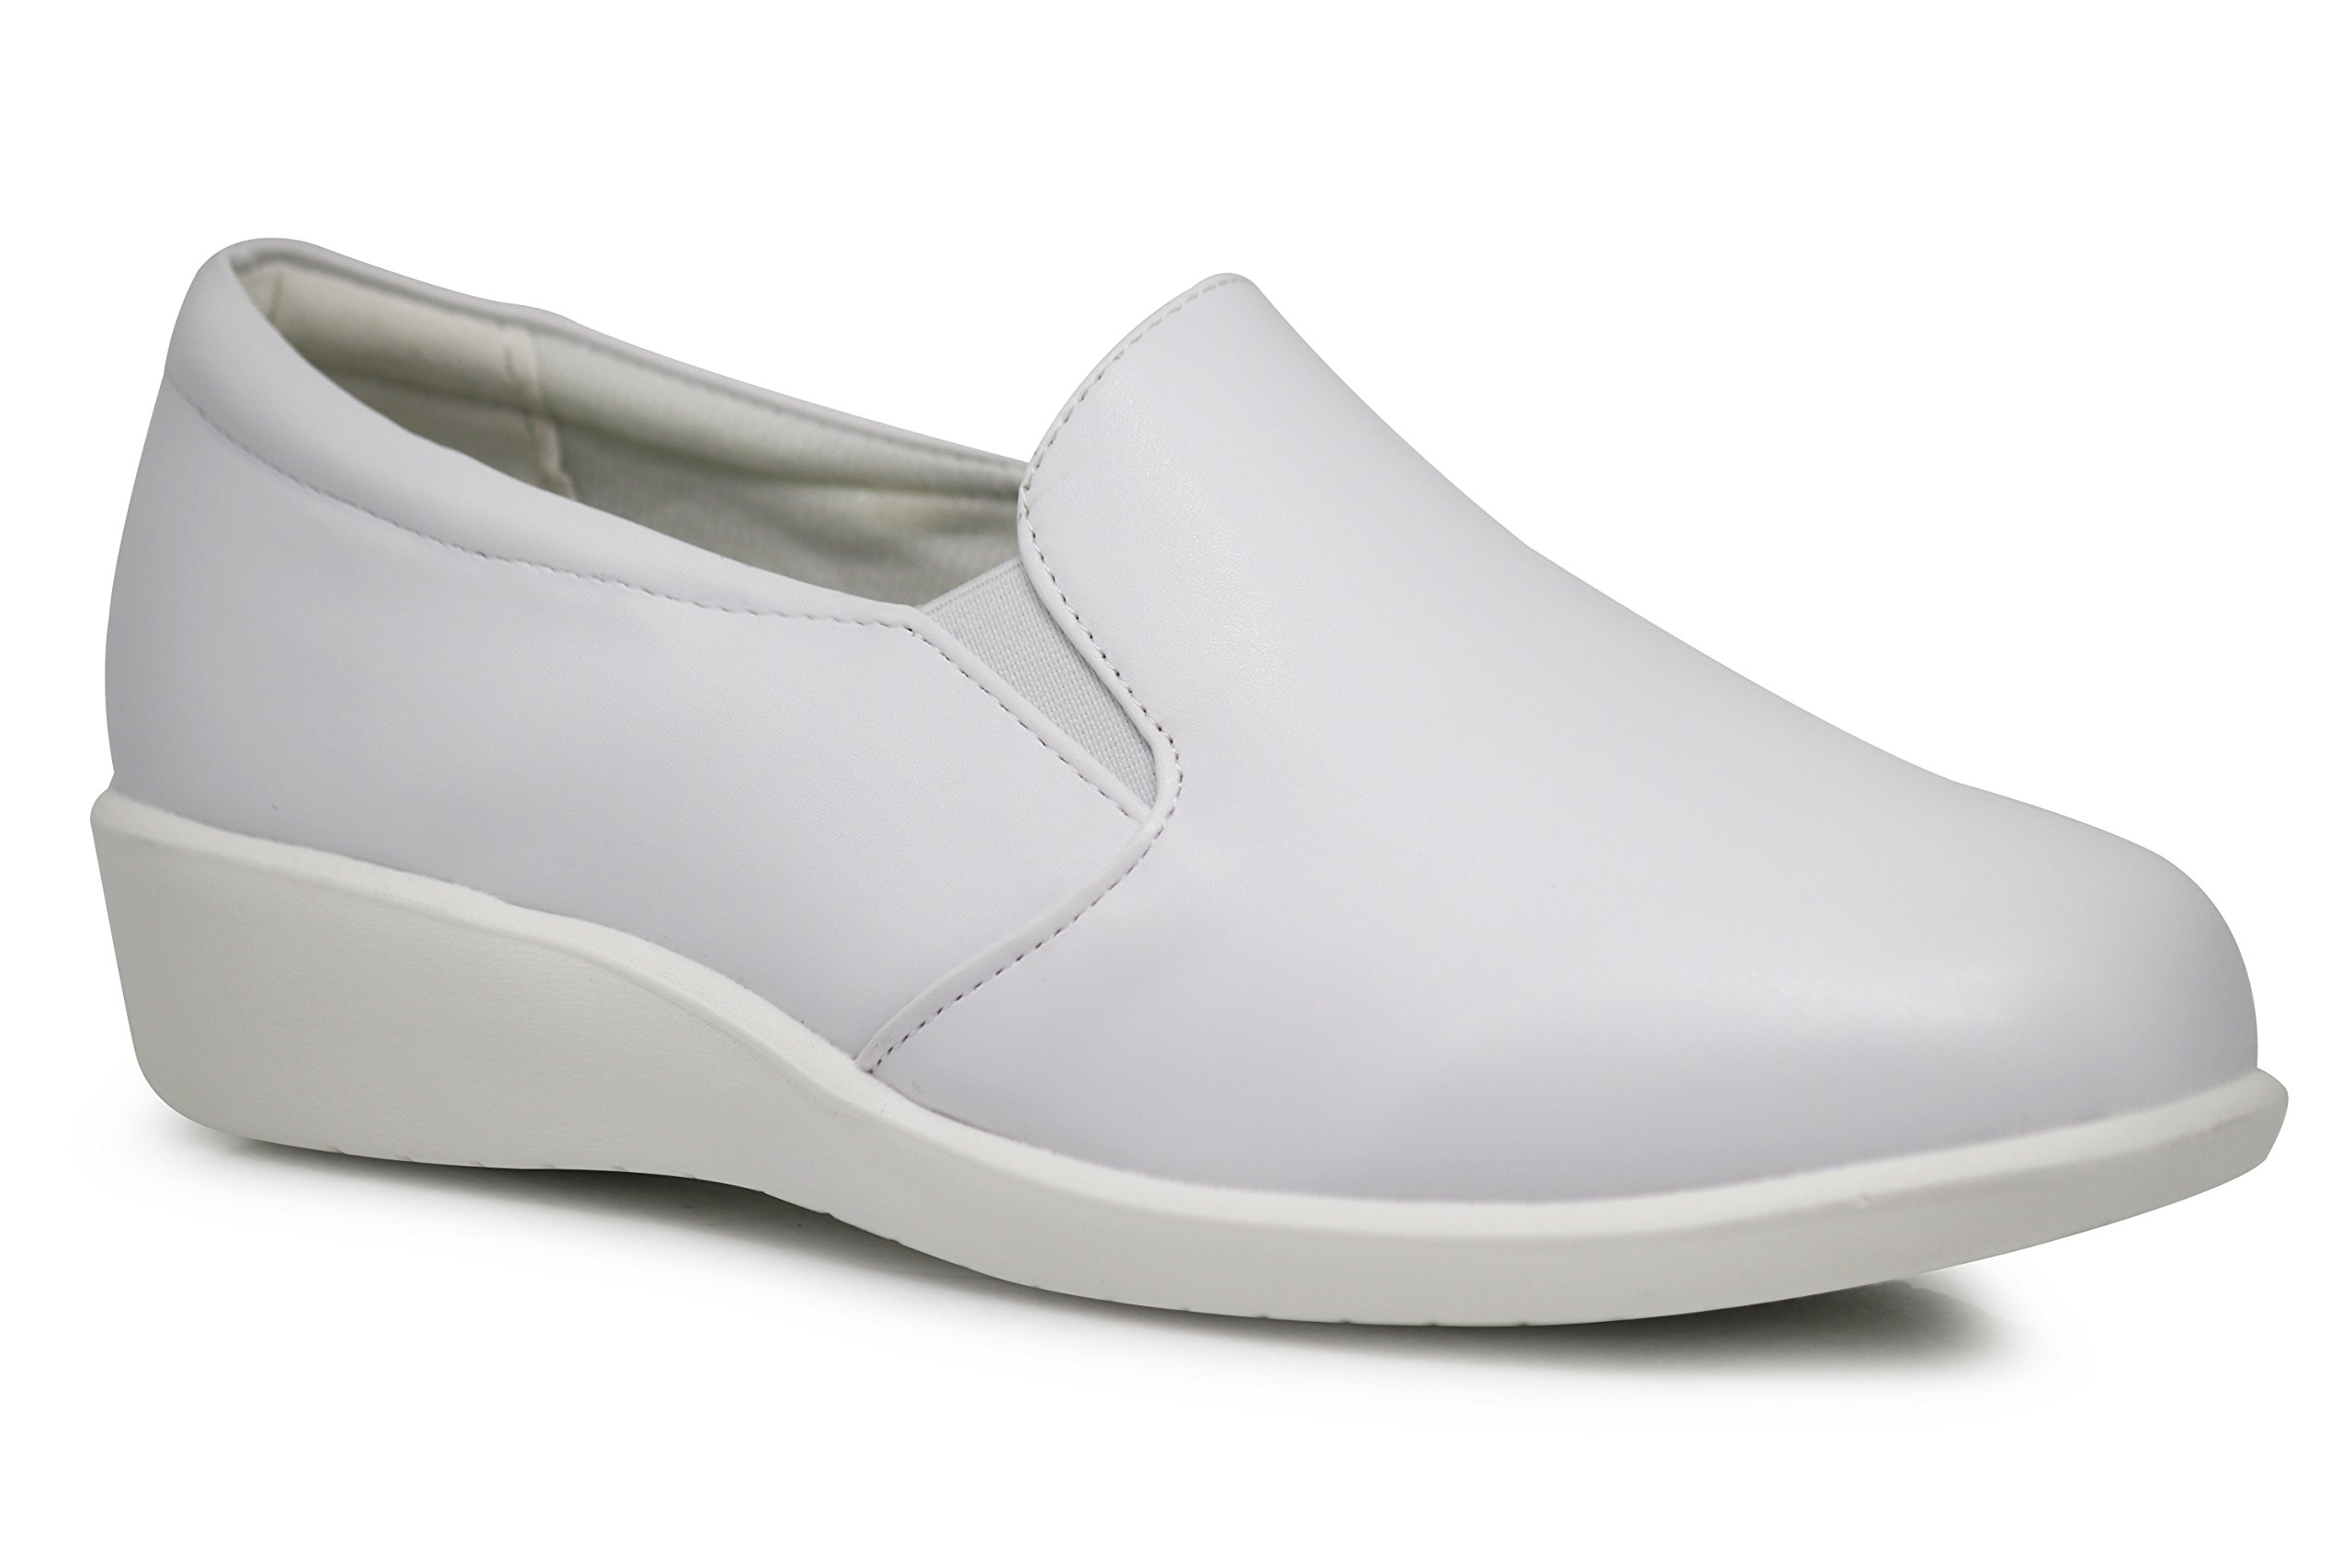 Enzo Romeo HY01 Women Slip On Loafers Nurse Work Medical Waitress Shoes Clogs Slip Resistant Shoes (7.5, Harmony02_White)